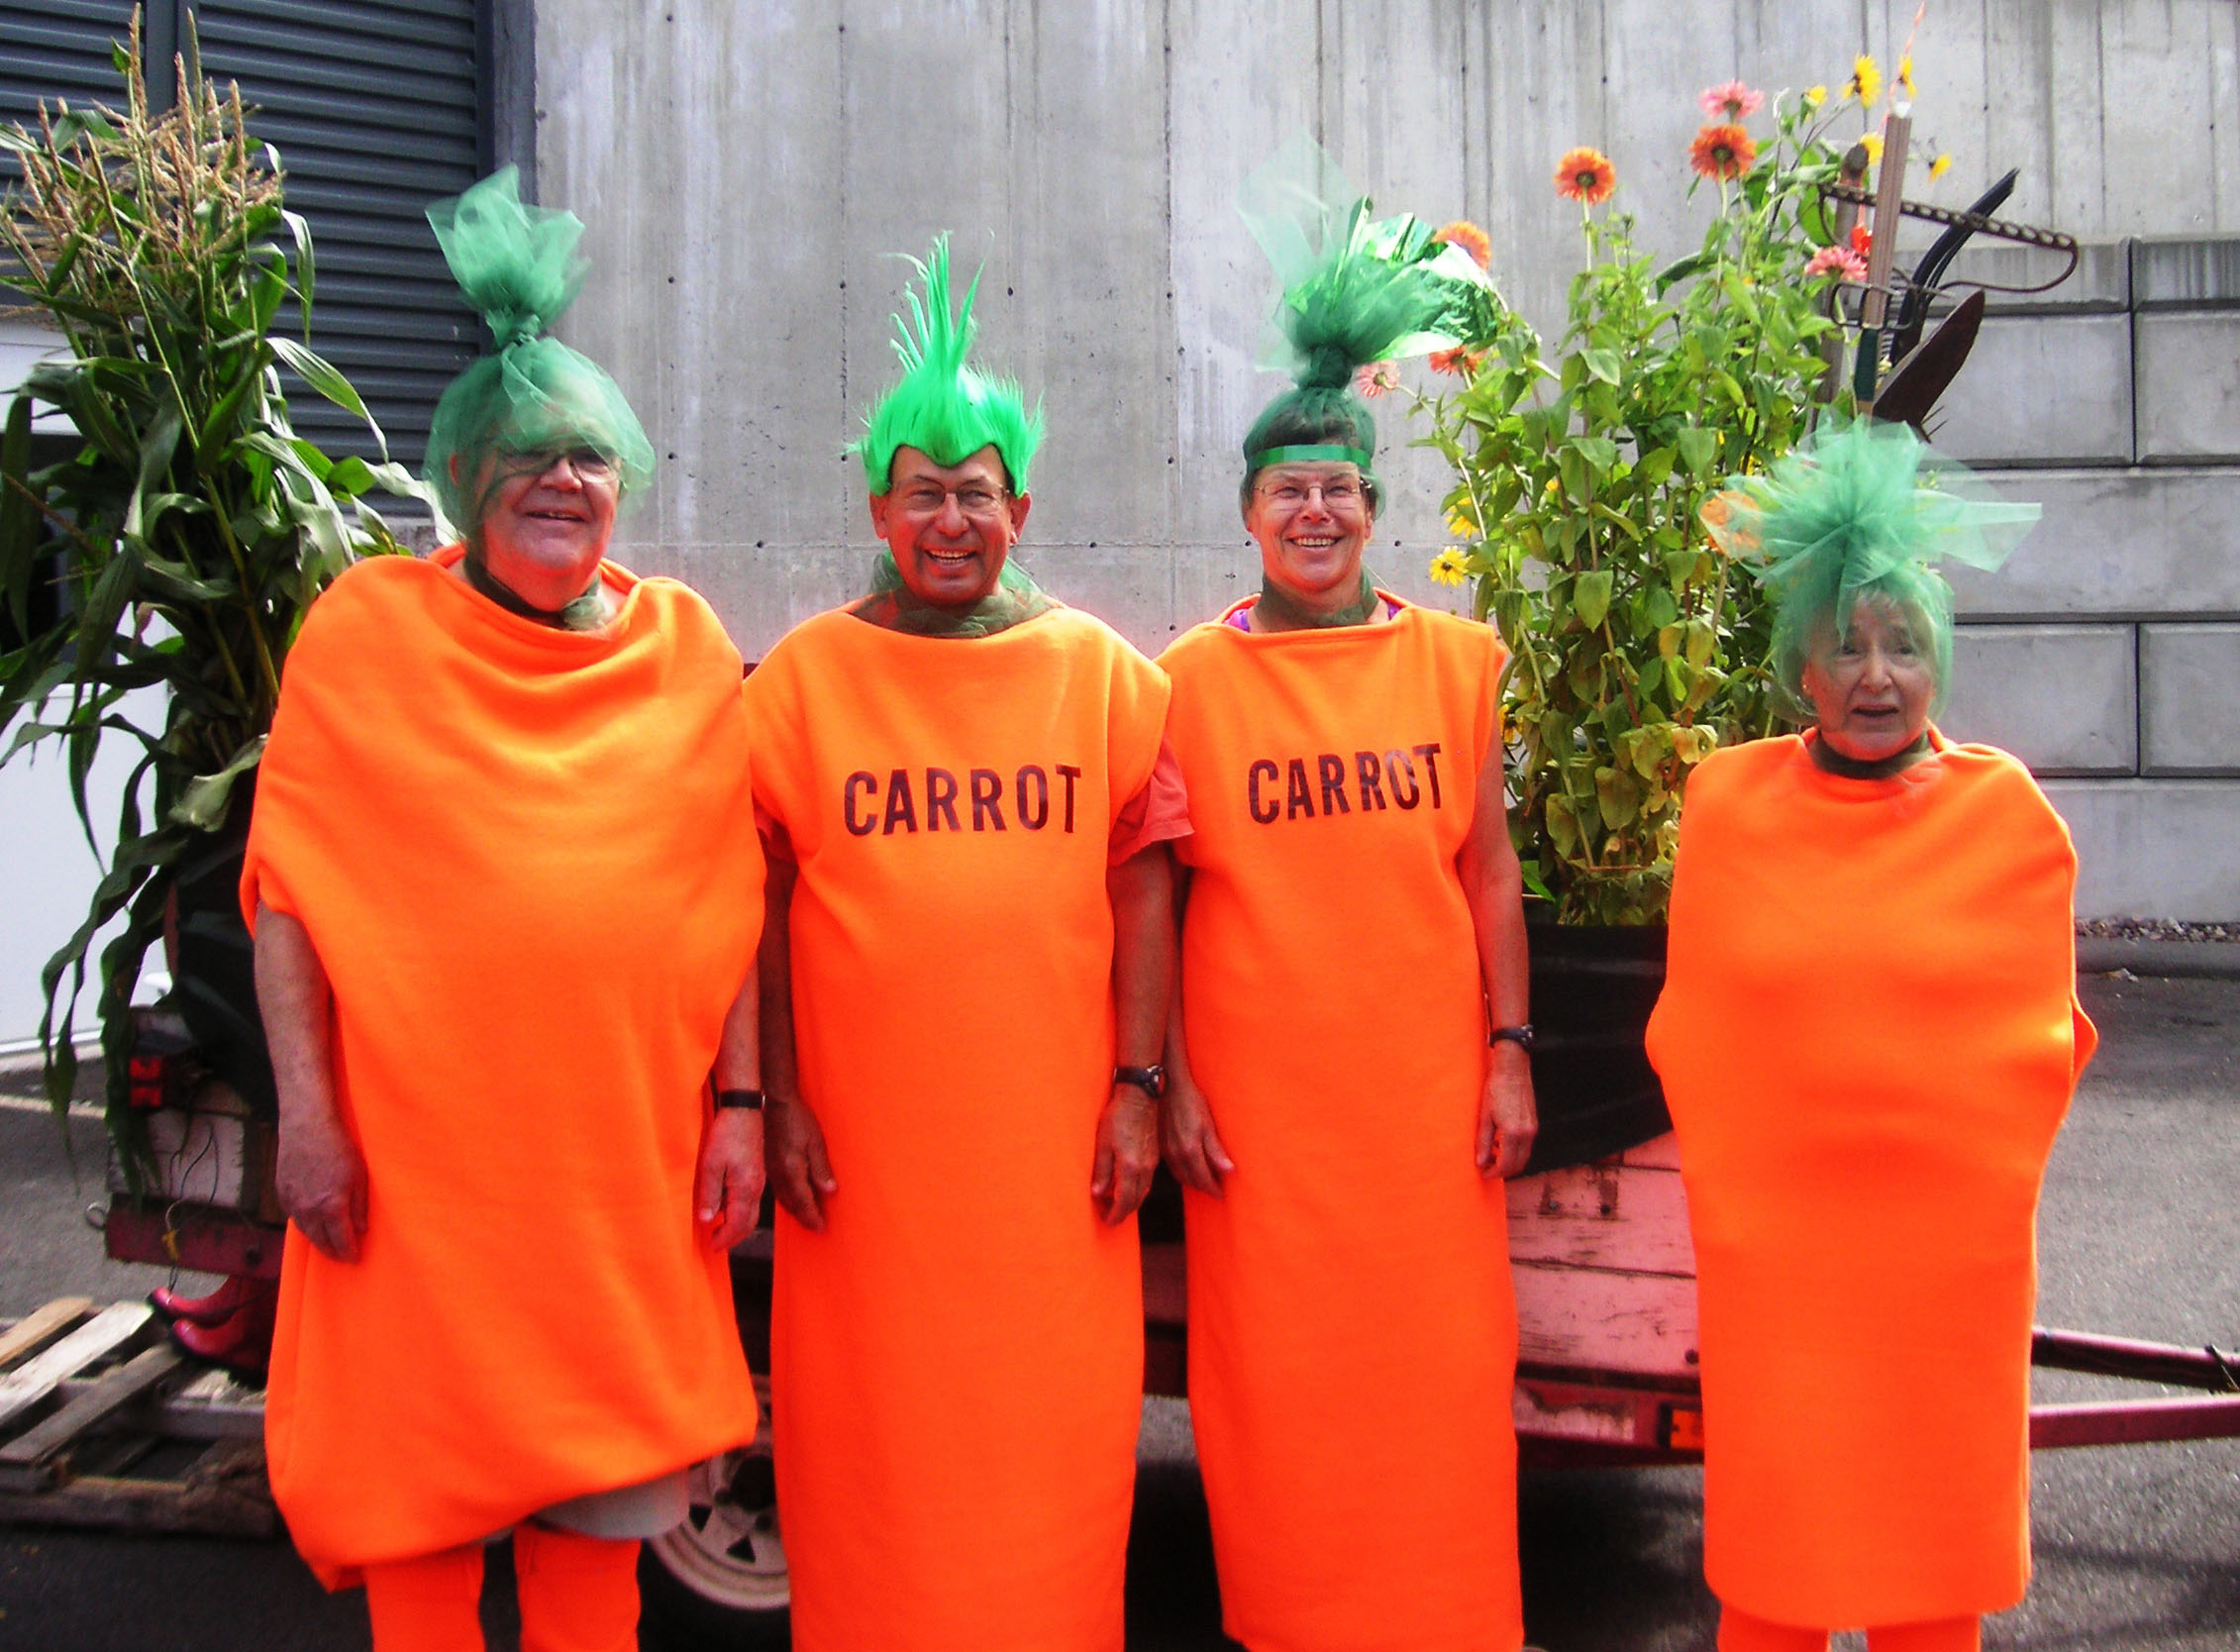 People Dressed as Carrots